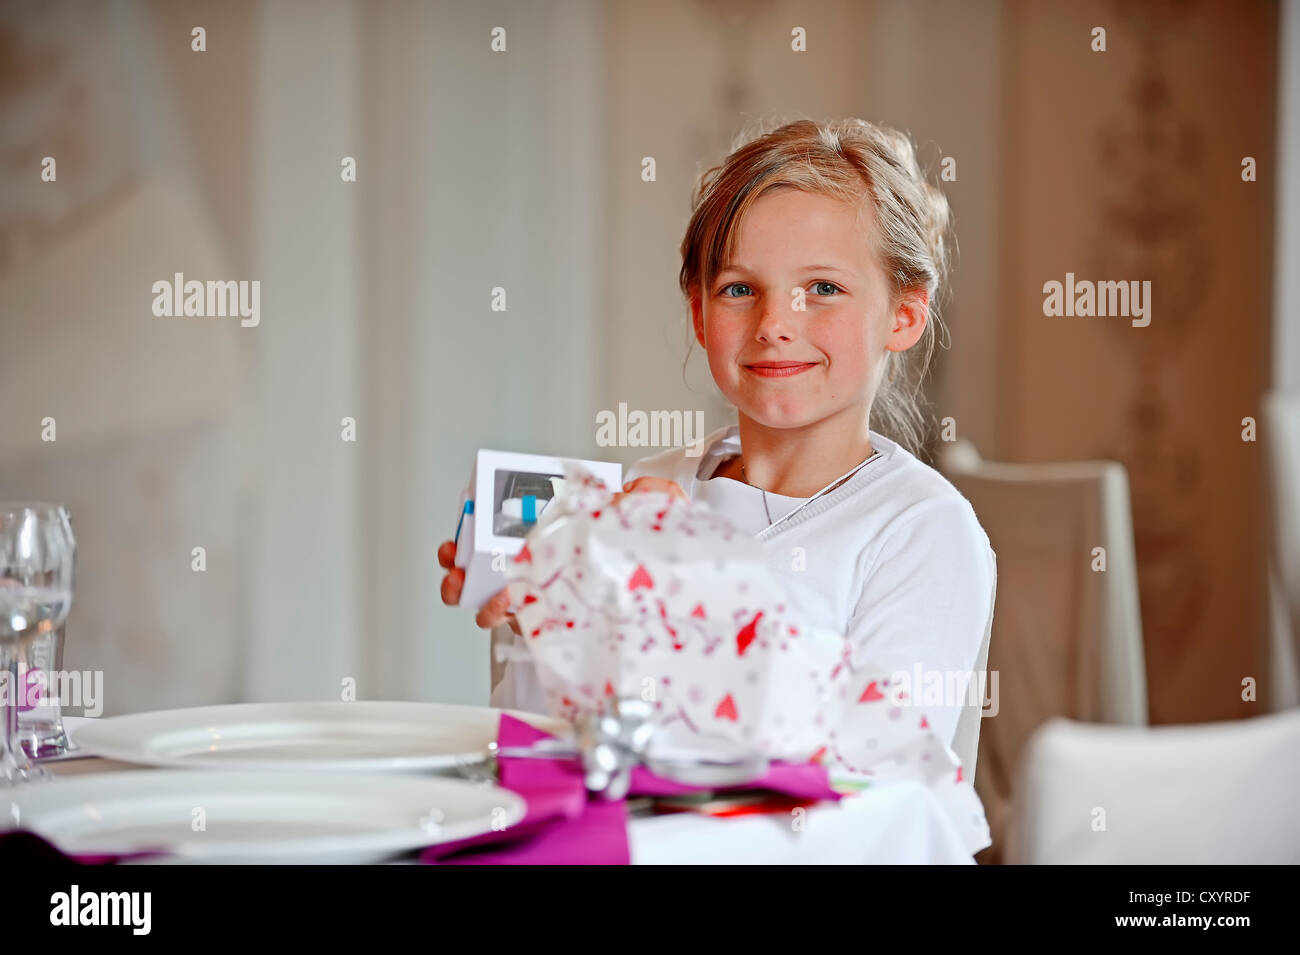 Girl, 9 years, holding present, on her First Communion day, Muensterland region, North Rhine-Westphalia - Stock Image